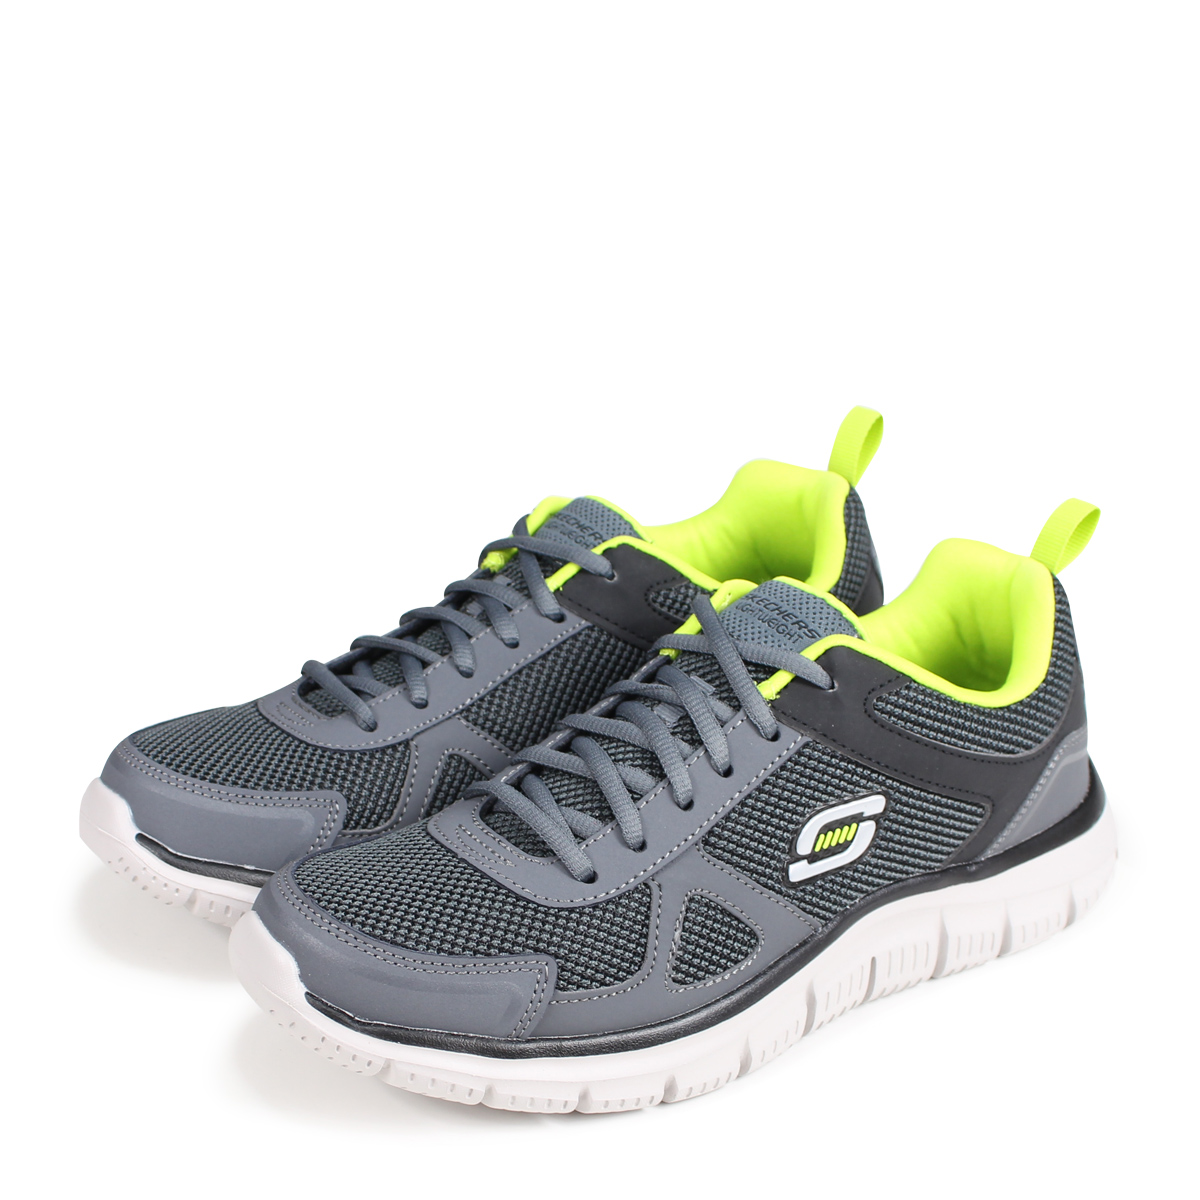 25f49fdce634 SKECHERS TRACK スケッチャーズトラックメンズスニーカー 999724 gray  load planned Shinnyu load  in reservation product 9 20 containing   189